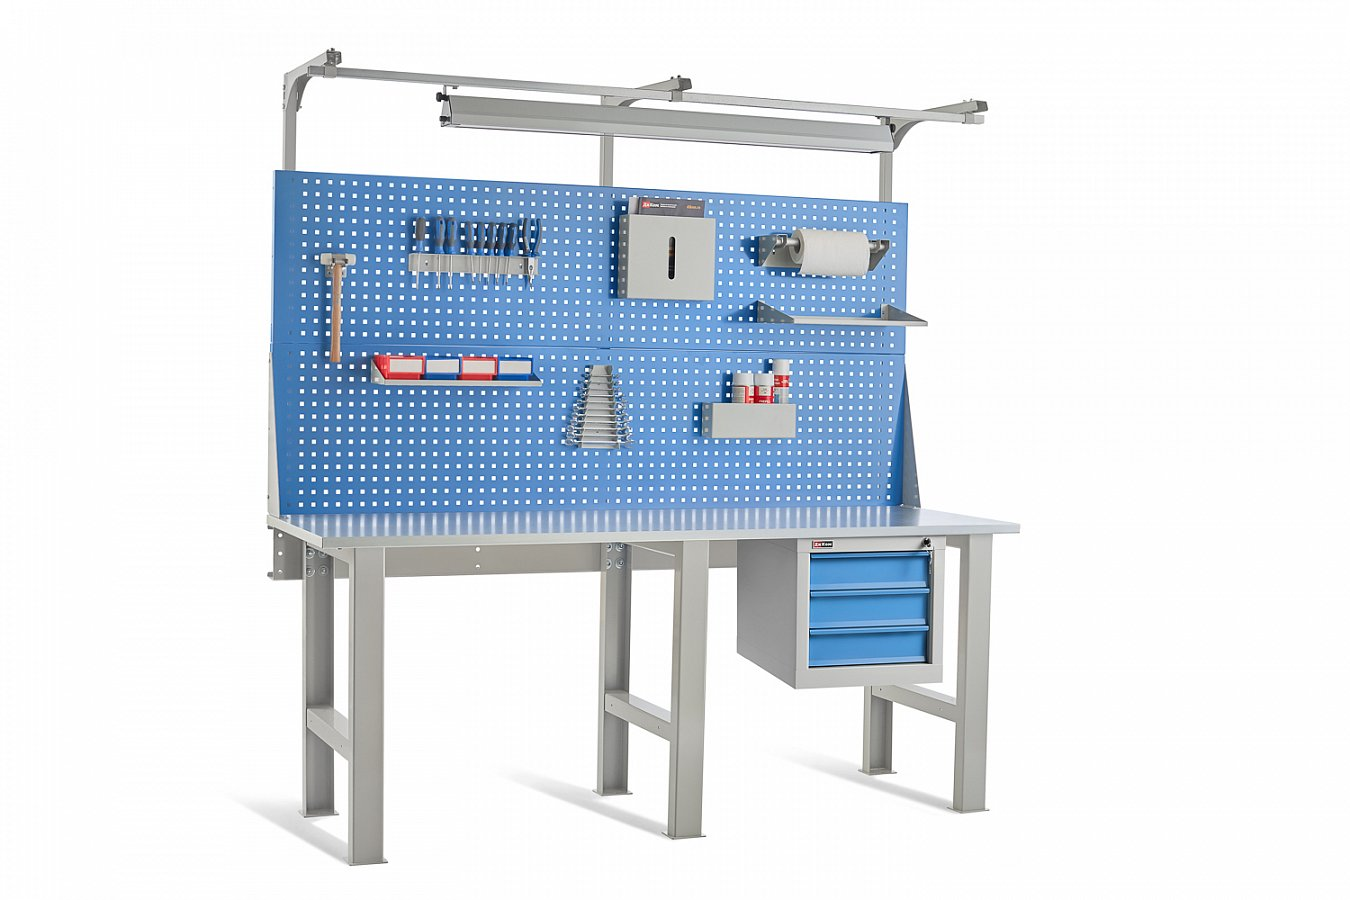 DiKom VL-200-02 Workbench